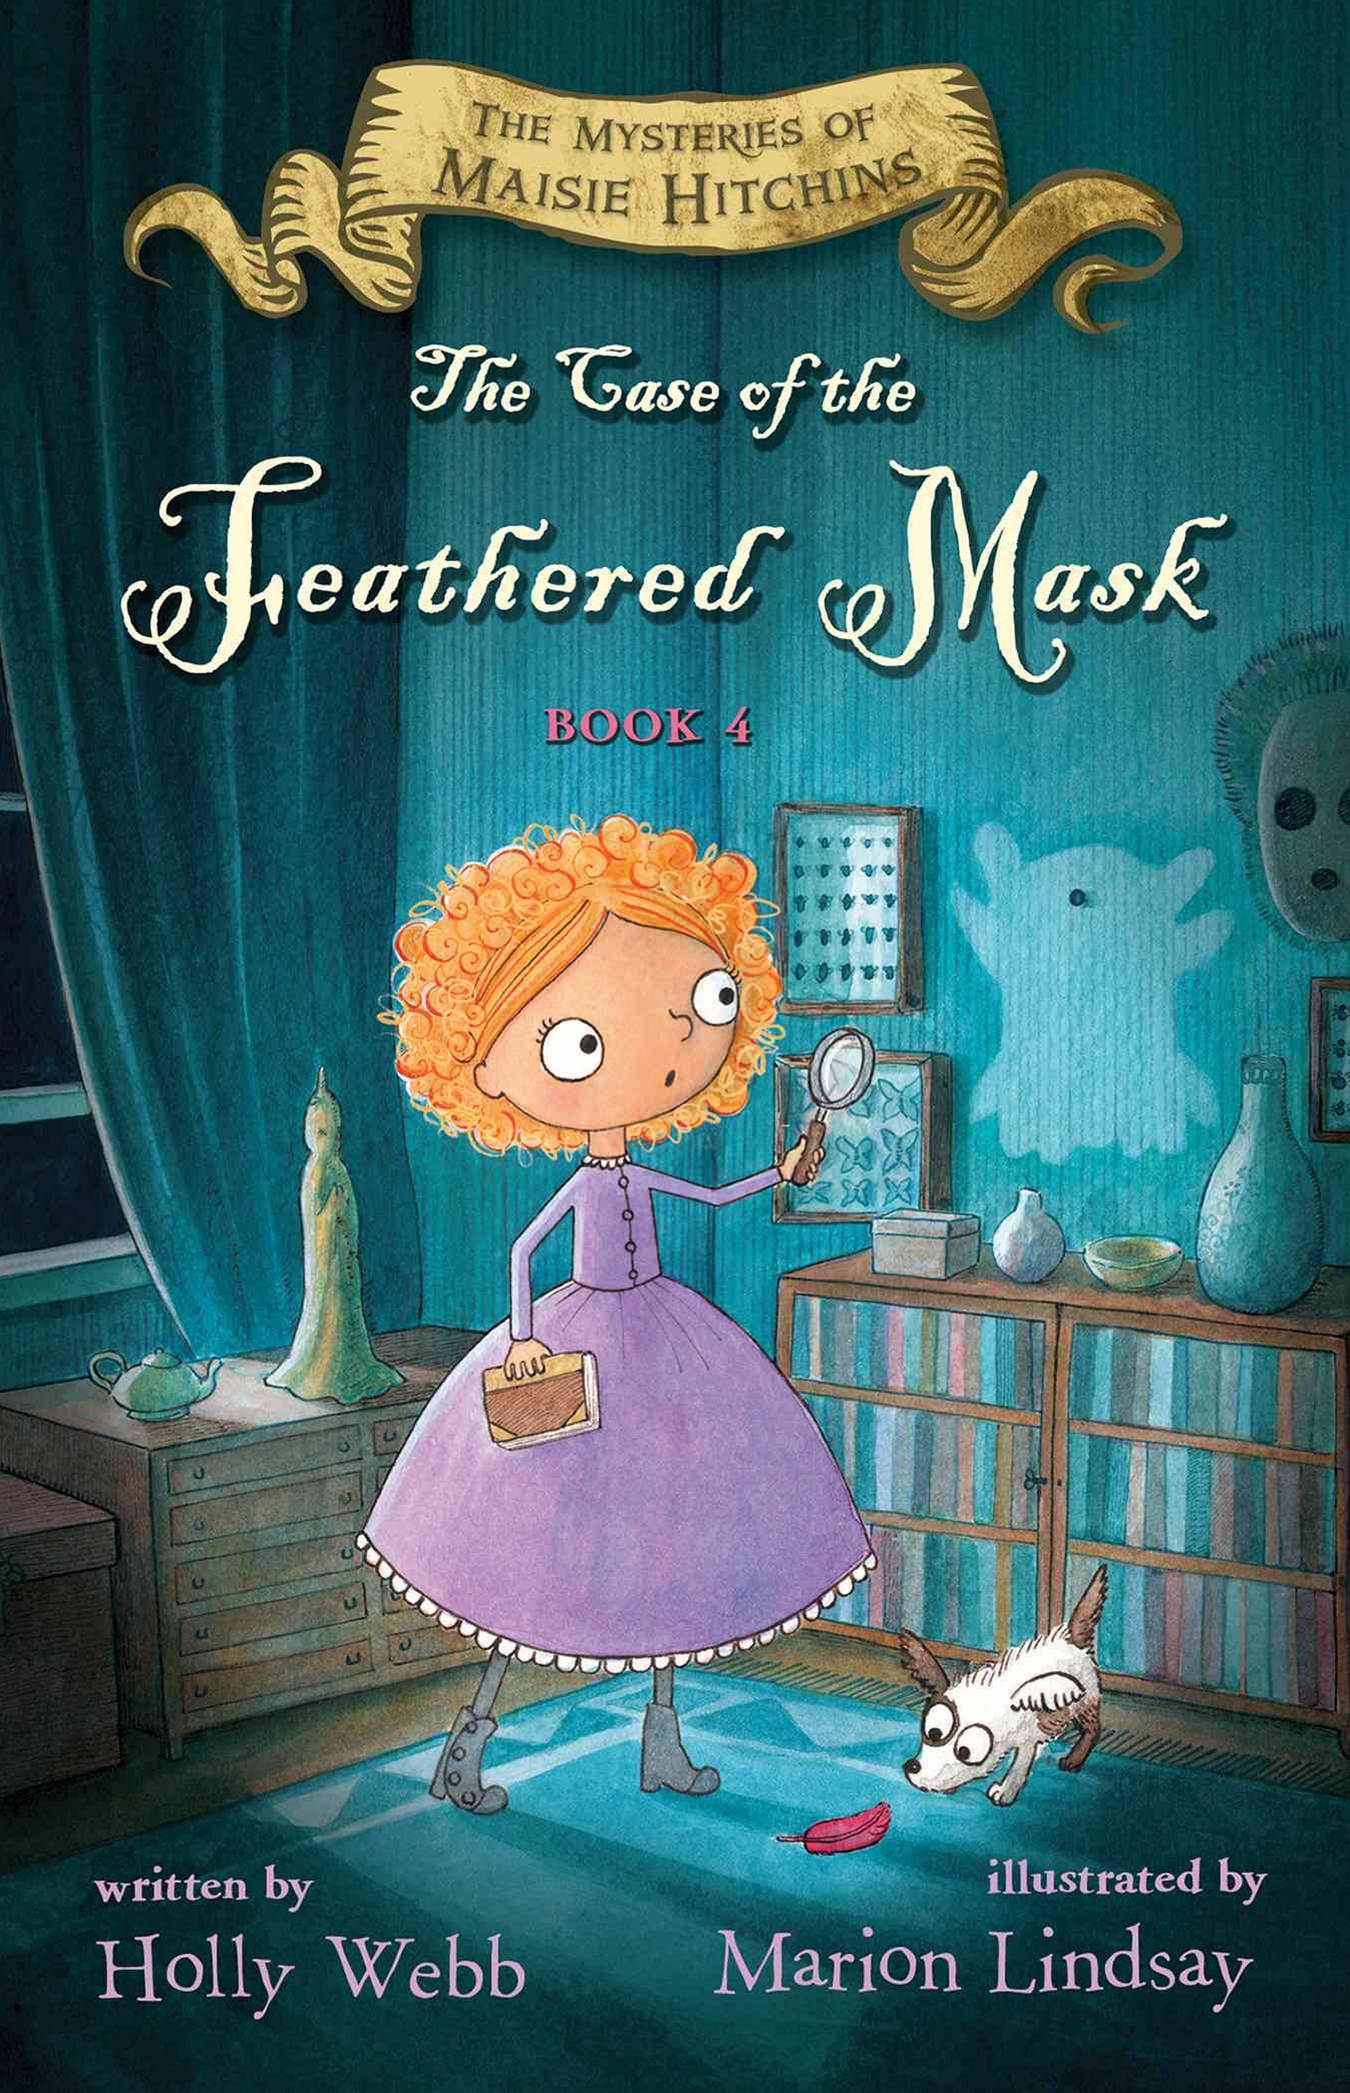 The Case of the Feathered Mask